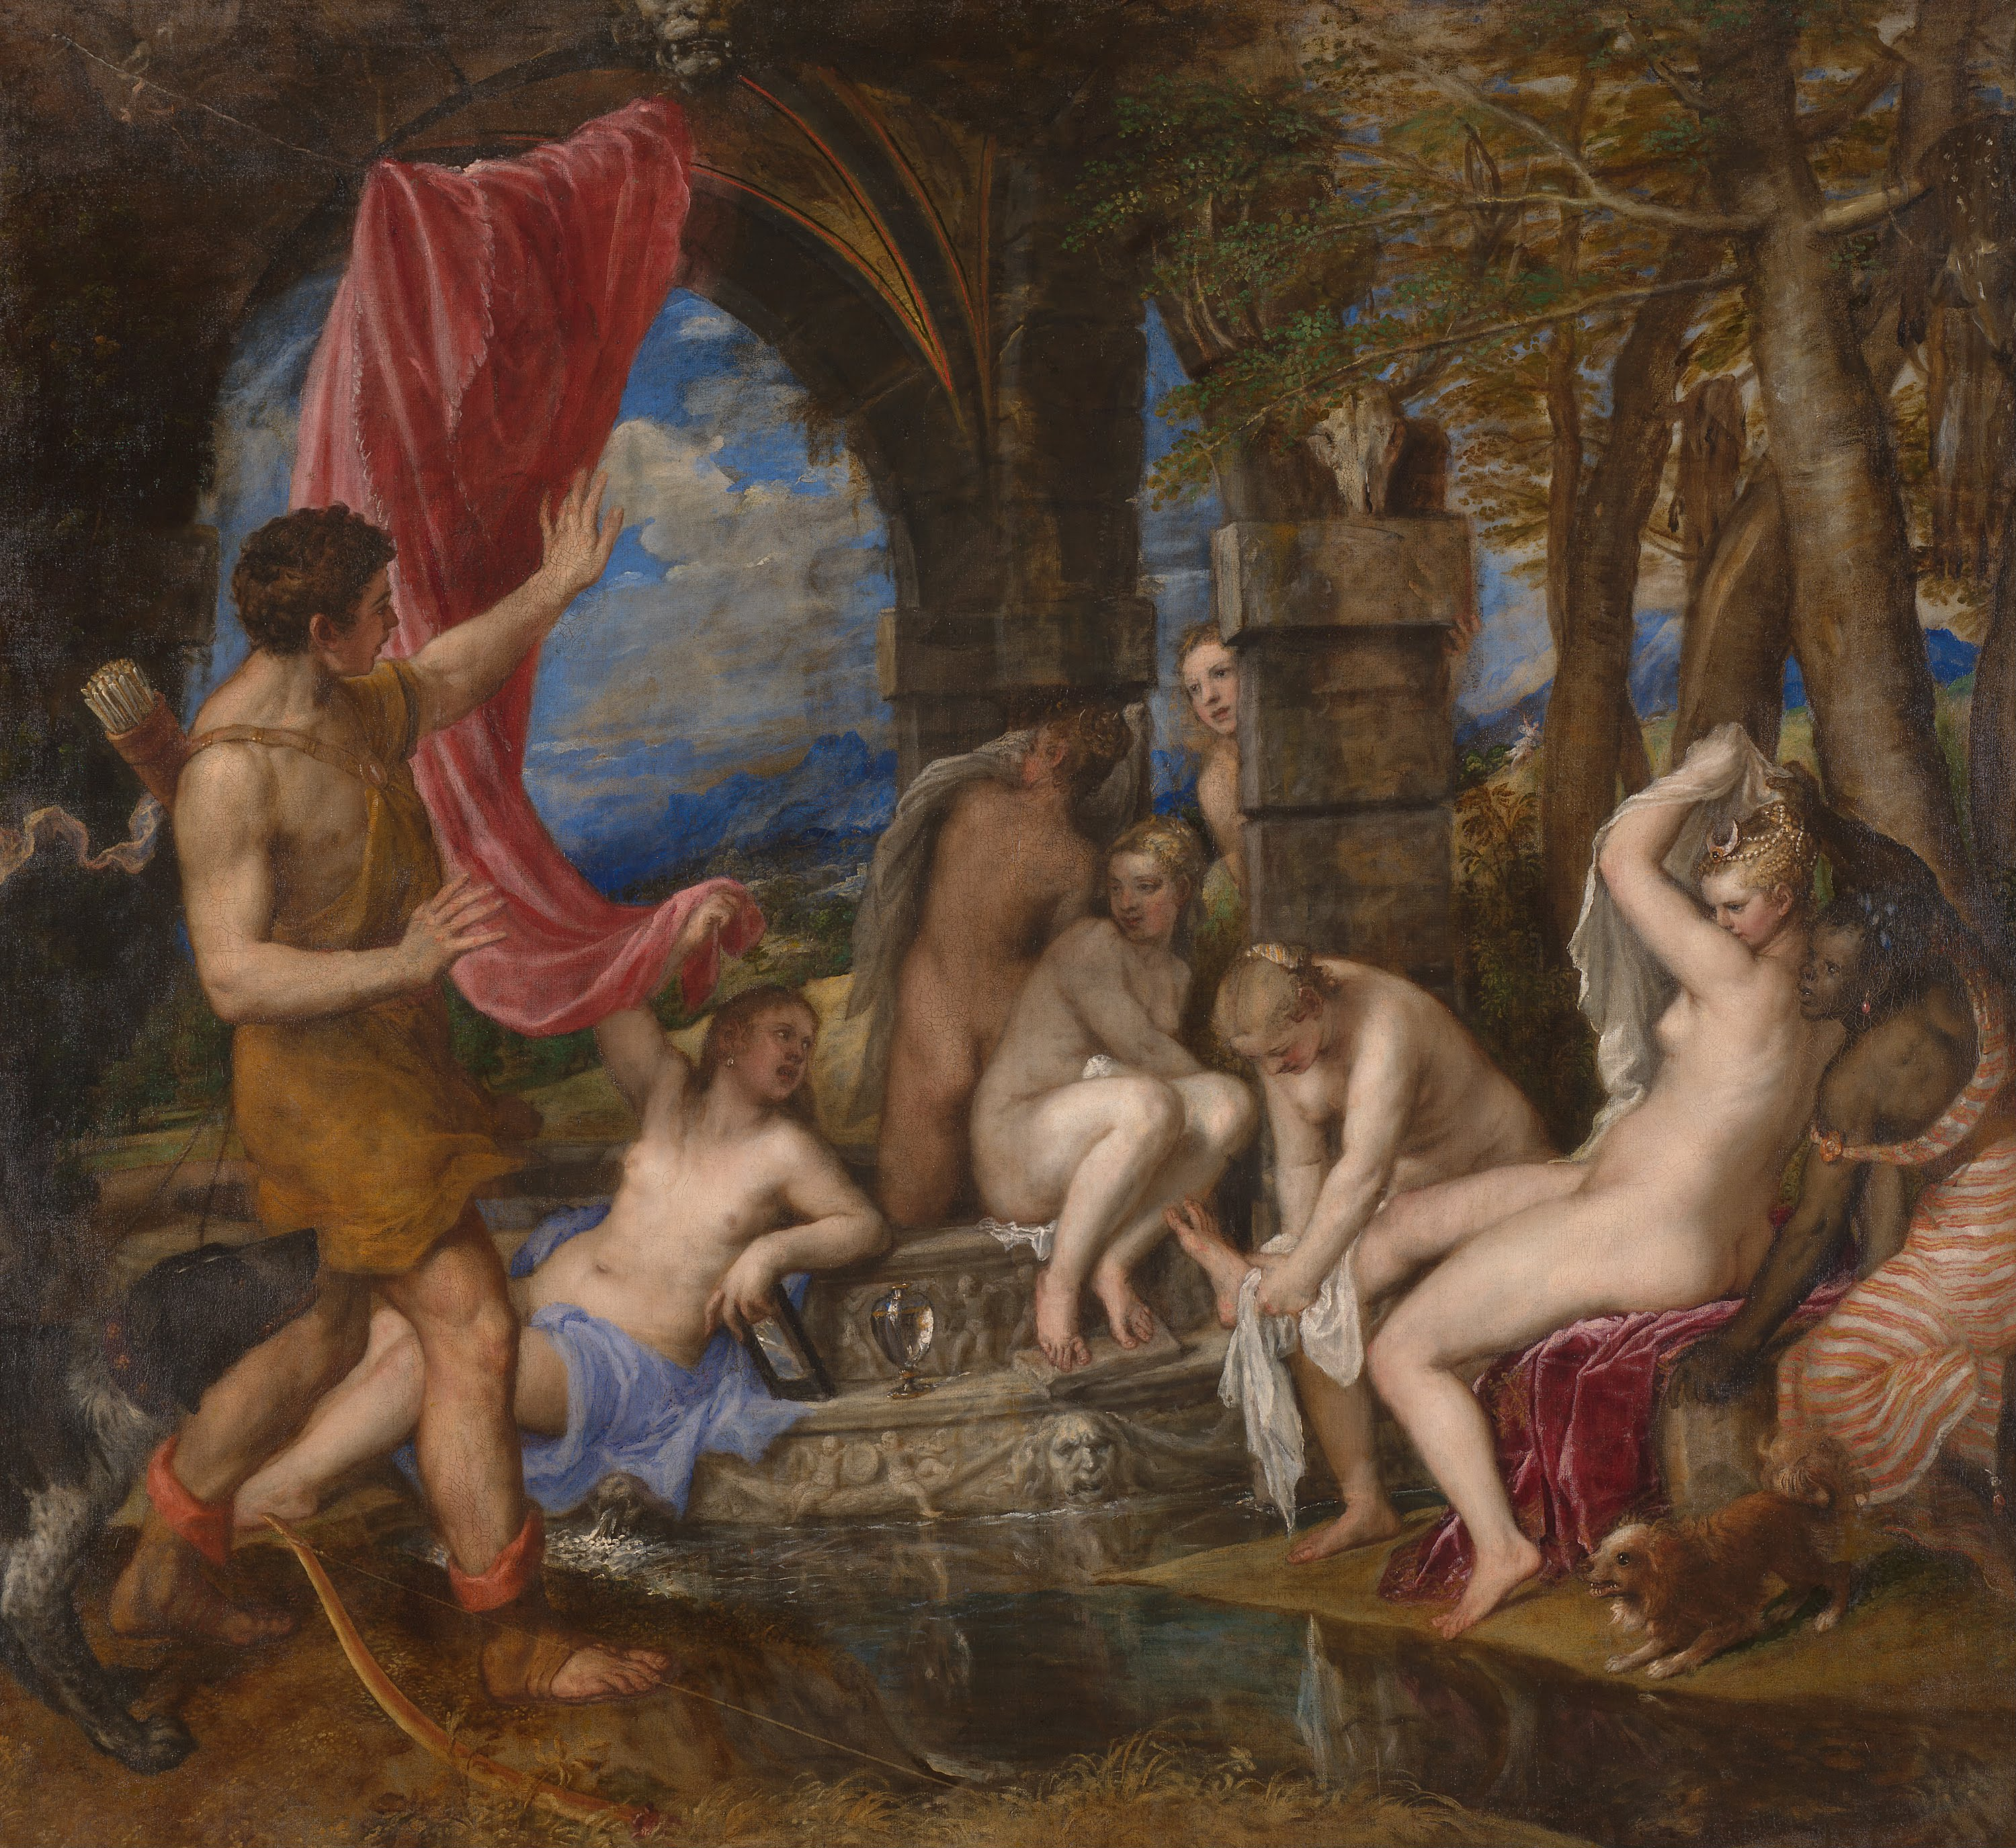 Titian's Diana and Actaeon poesie